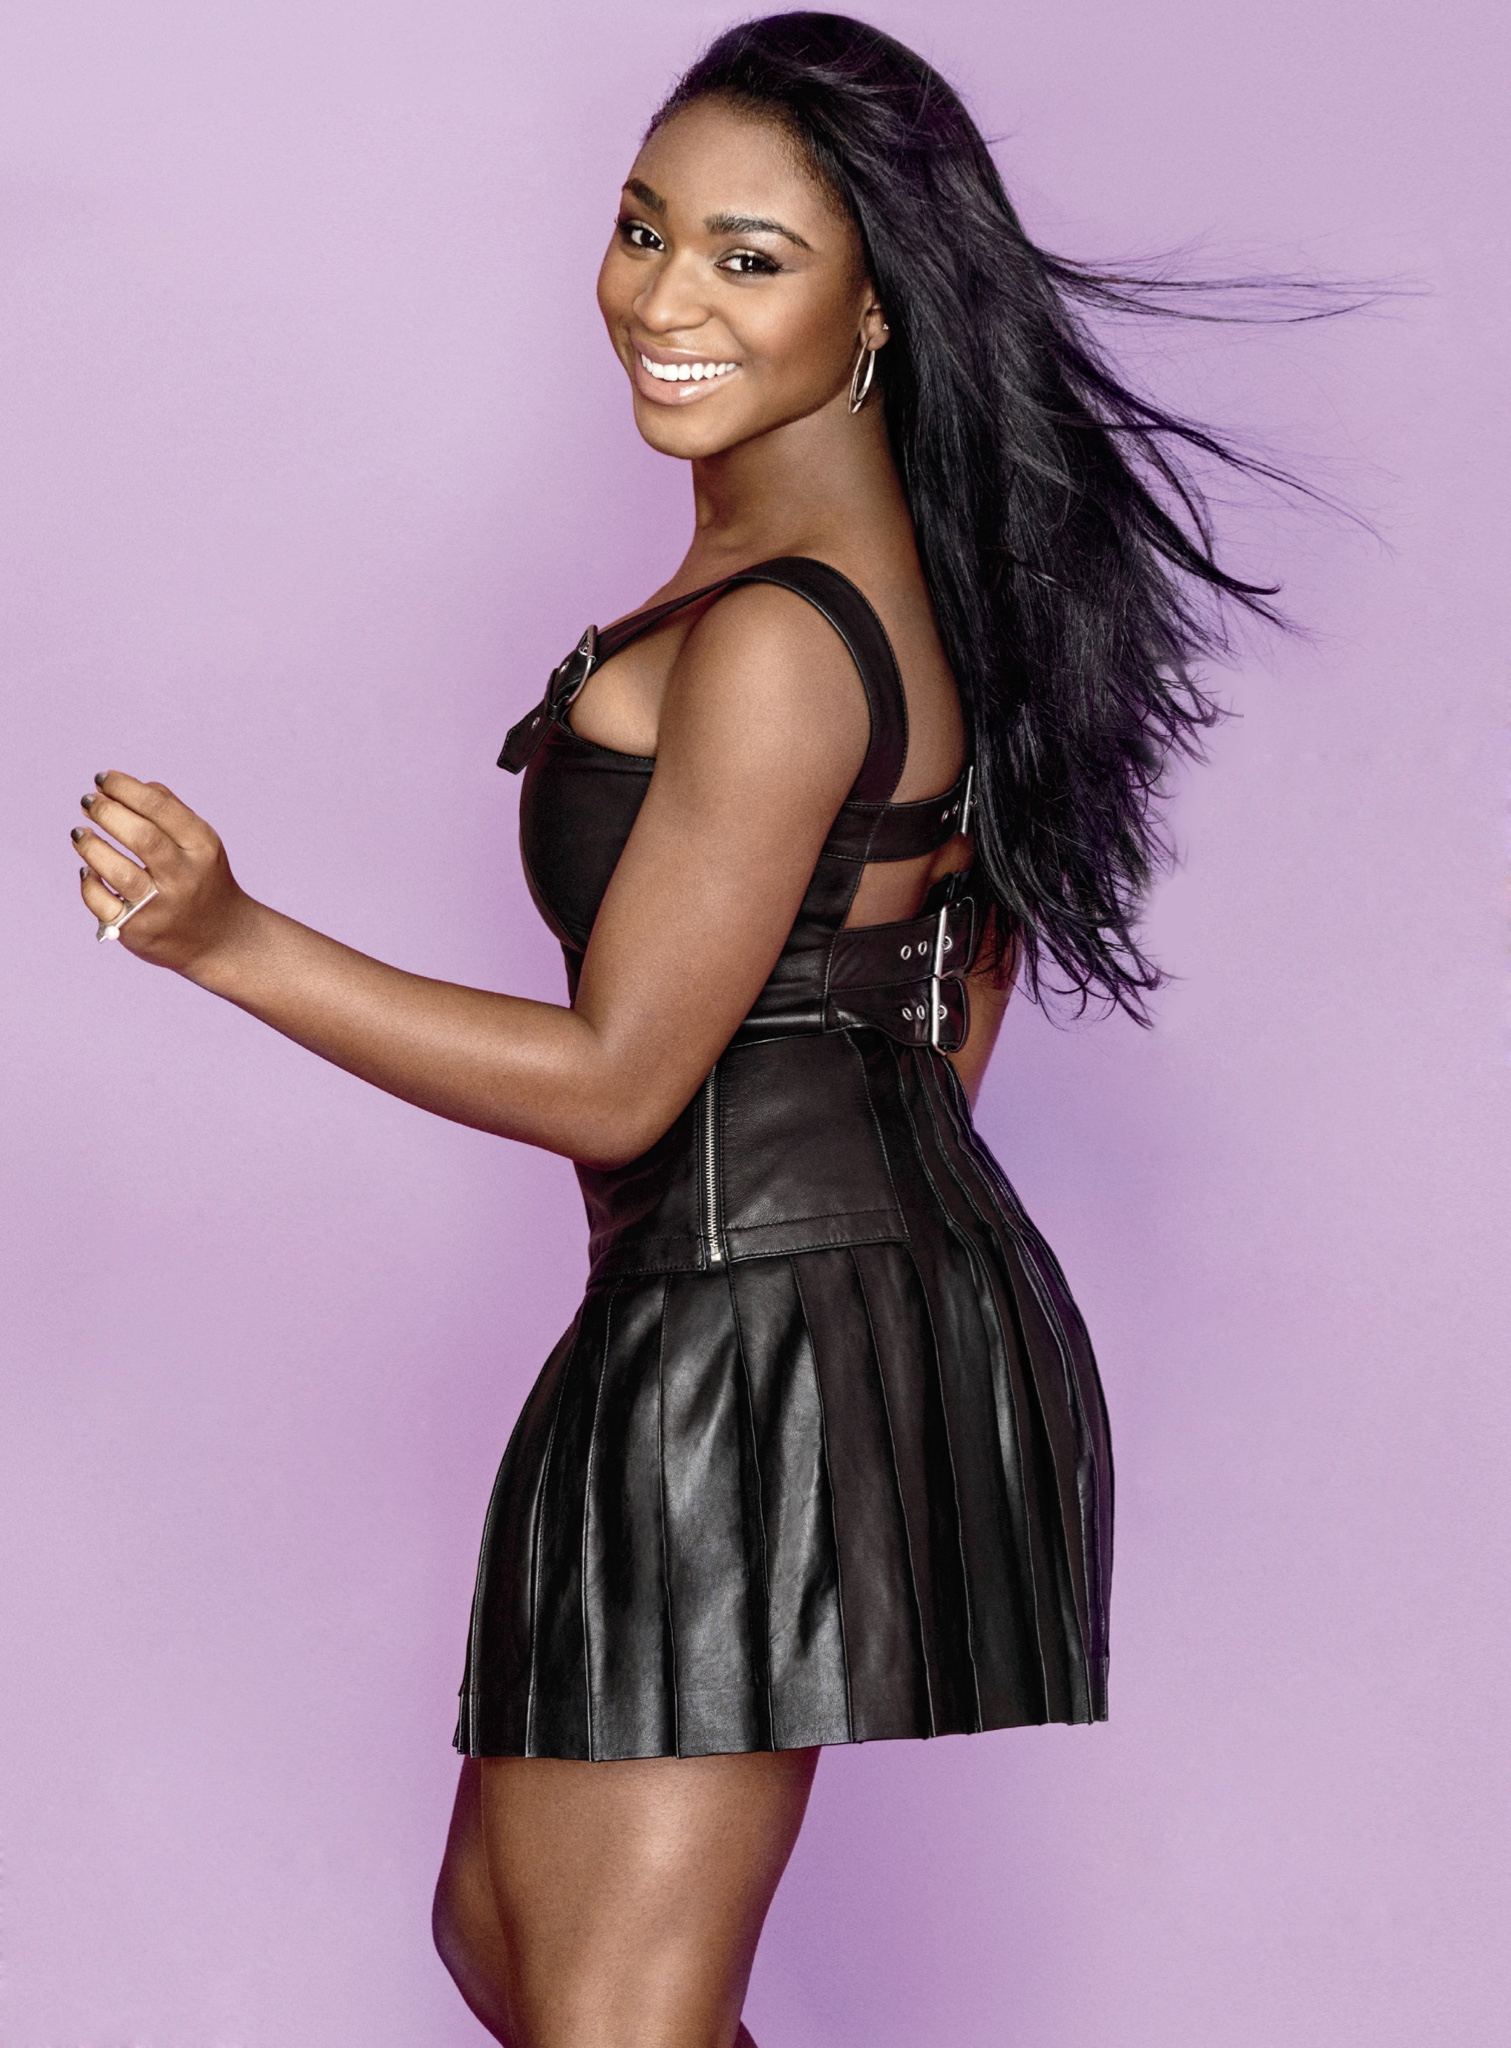 Normani kordei fifth harmony wiki fandom powered by wikia